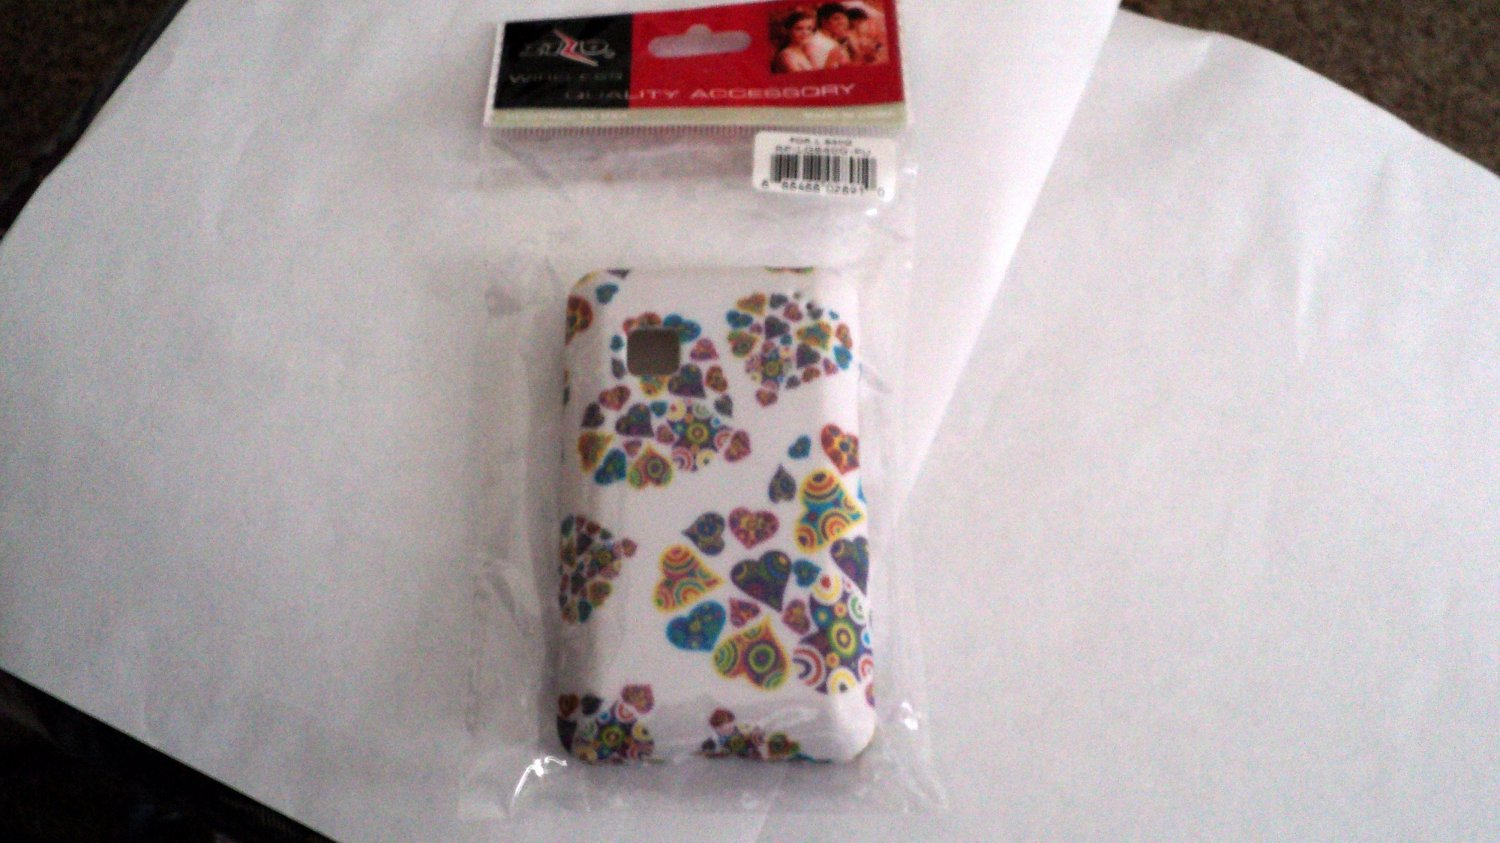 Colorful Hearts Style Texture Accessory Hard Case Cover For Tracfone LG 840G #302143